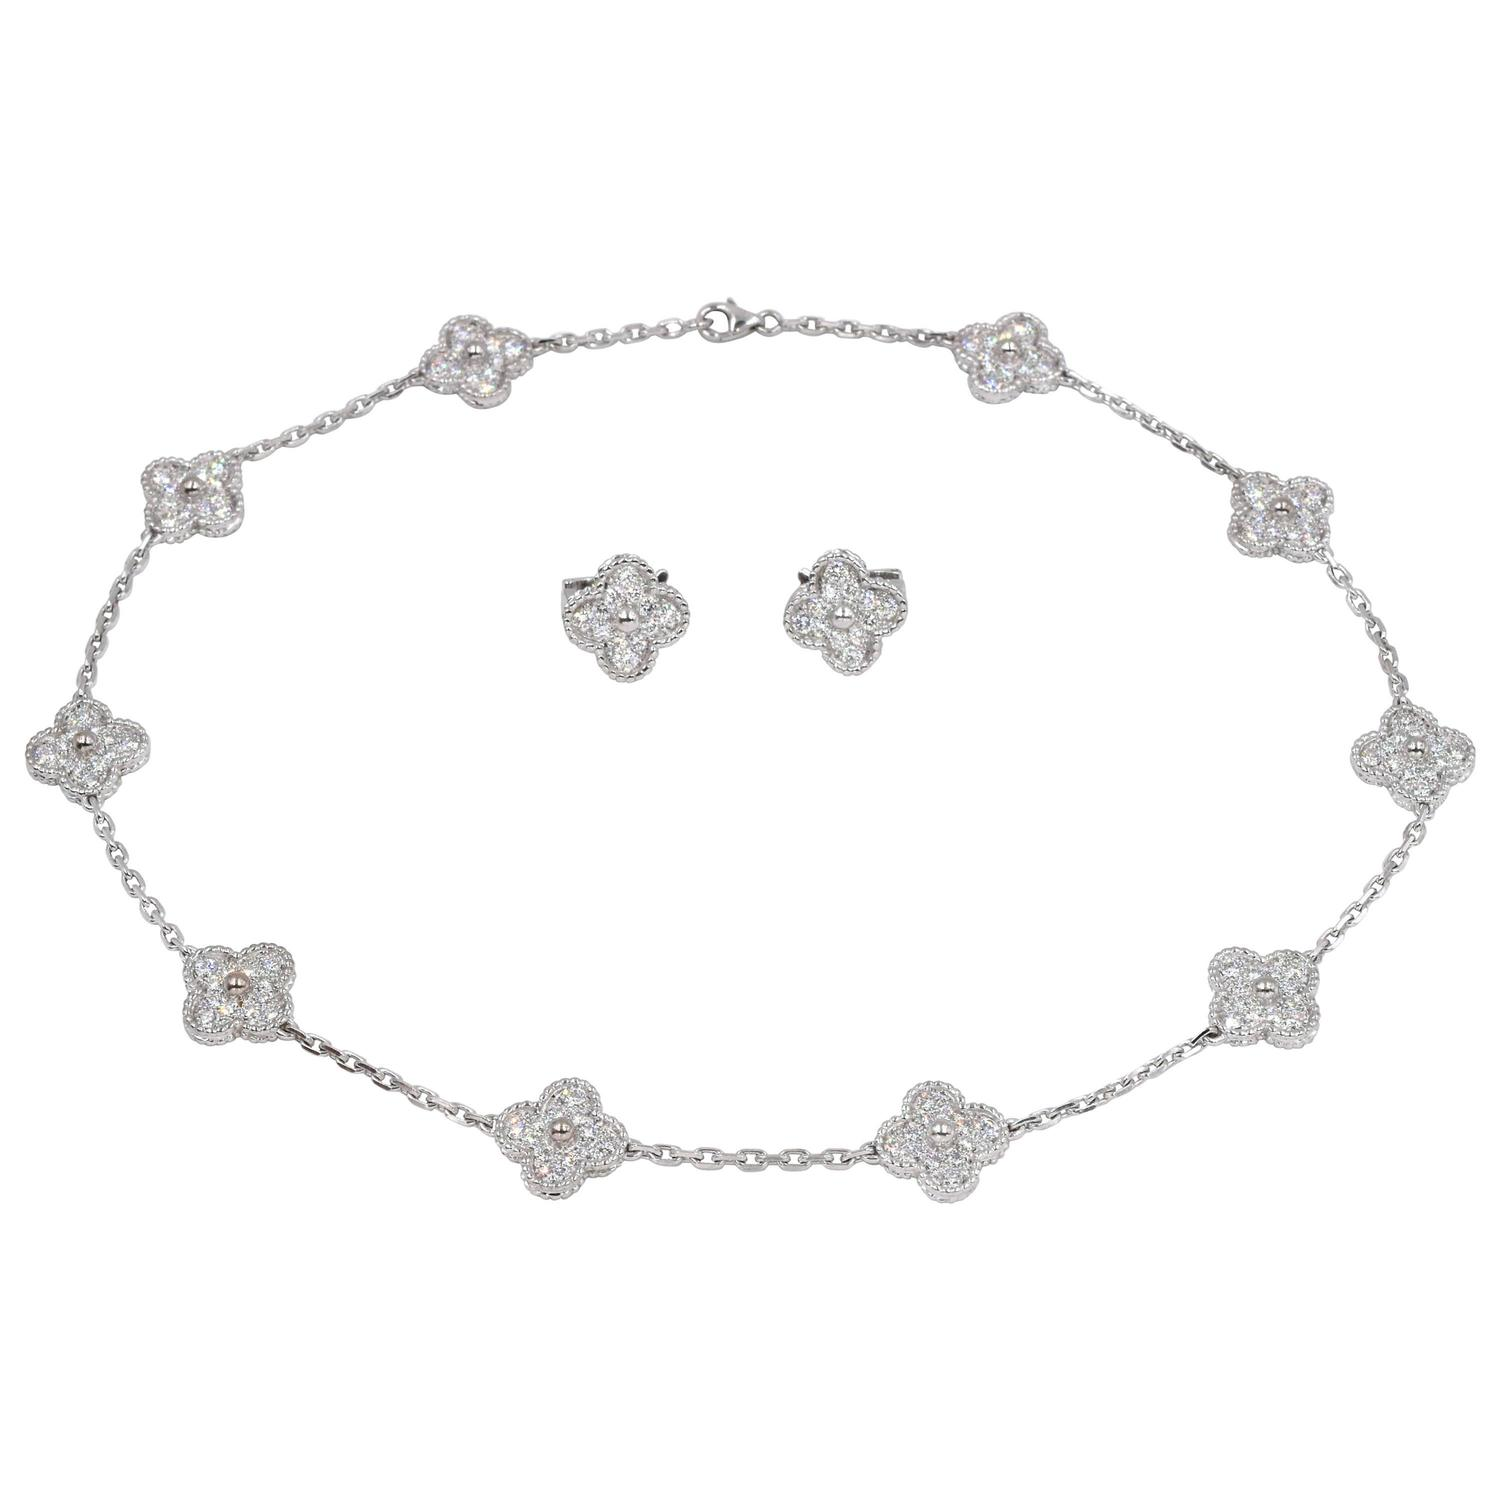 Van cleef and arpels diamond alhambra necklace and earrings at 1stdibs aloadofball Choice Image